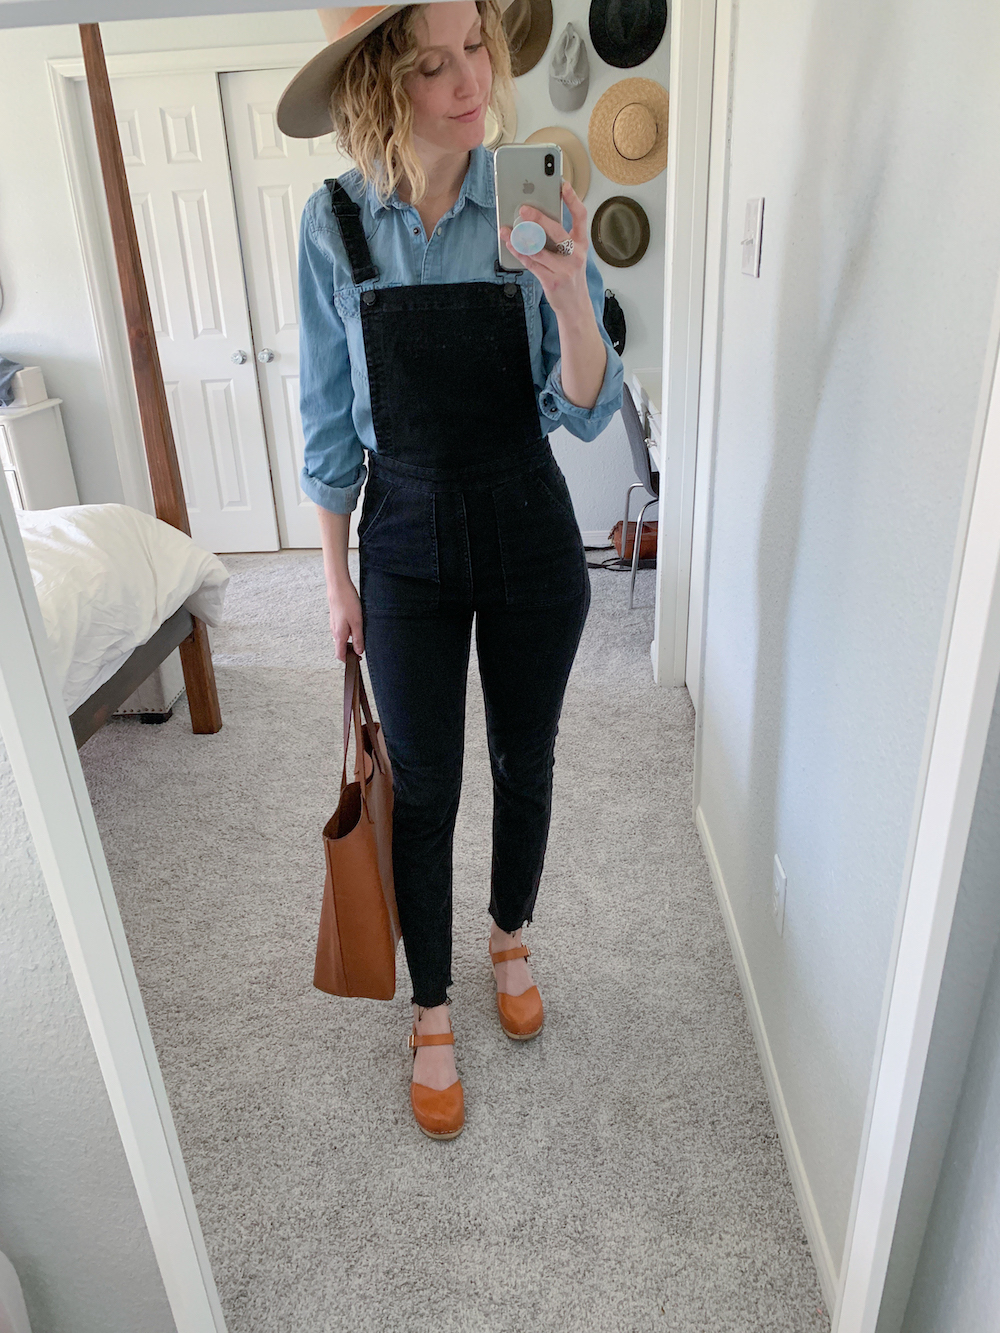 how to style denim overalls, overalls, clogs, how to style clogs, styling clogs, Swedish hasbeens, Swedish hasbeens clogs, styling overalls, casual overalls, six ways to style overalls, Jesse Coulter blog, Austin blogger, Austin fashion blogger, mom overalls, madewell overalls, mom style blogger, mom fashion blogger, Austin Texas, Austin blogger, black overalls